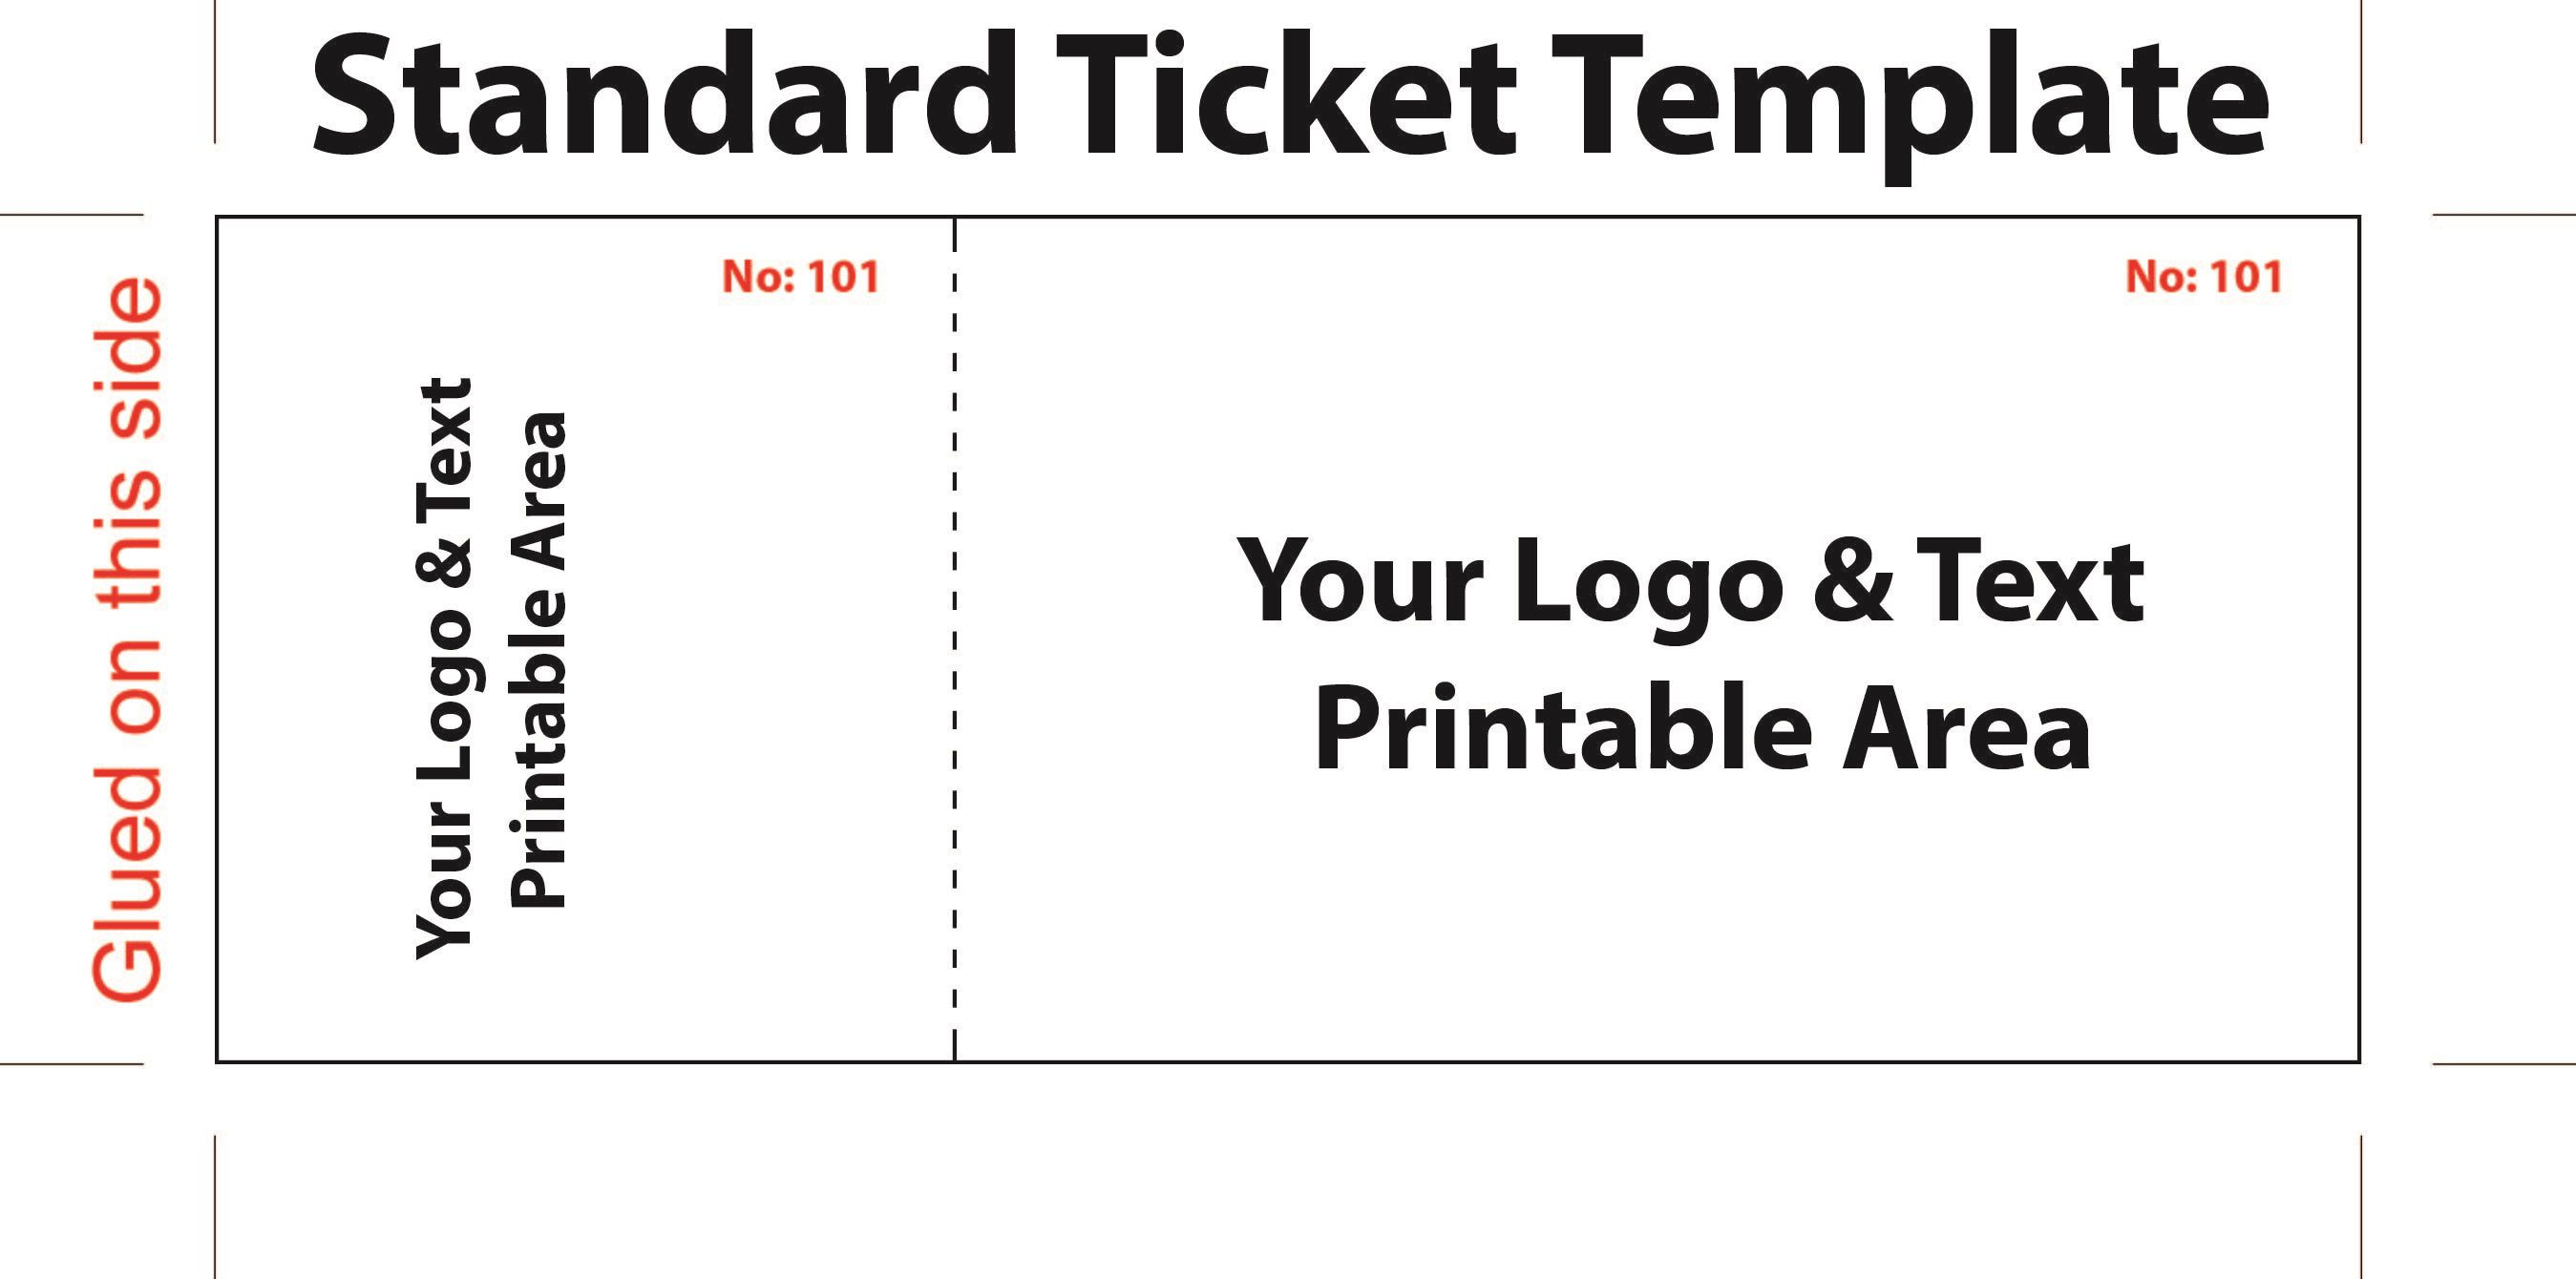 006 Dreaded Concert Ticket Template Word High Resolution  Free MicrosoftFull